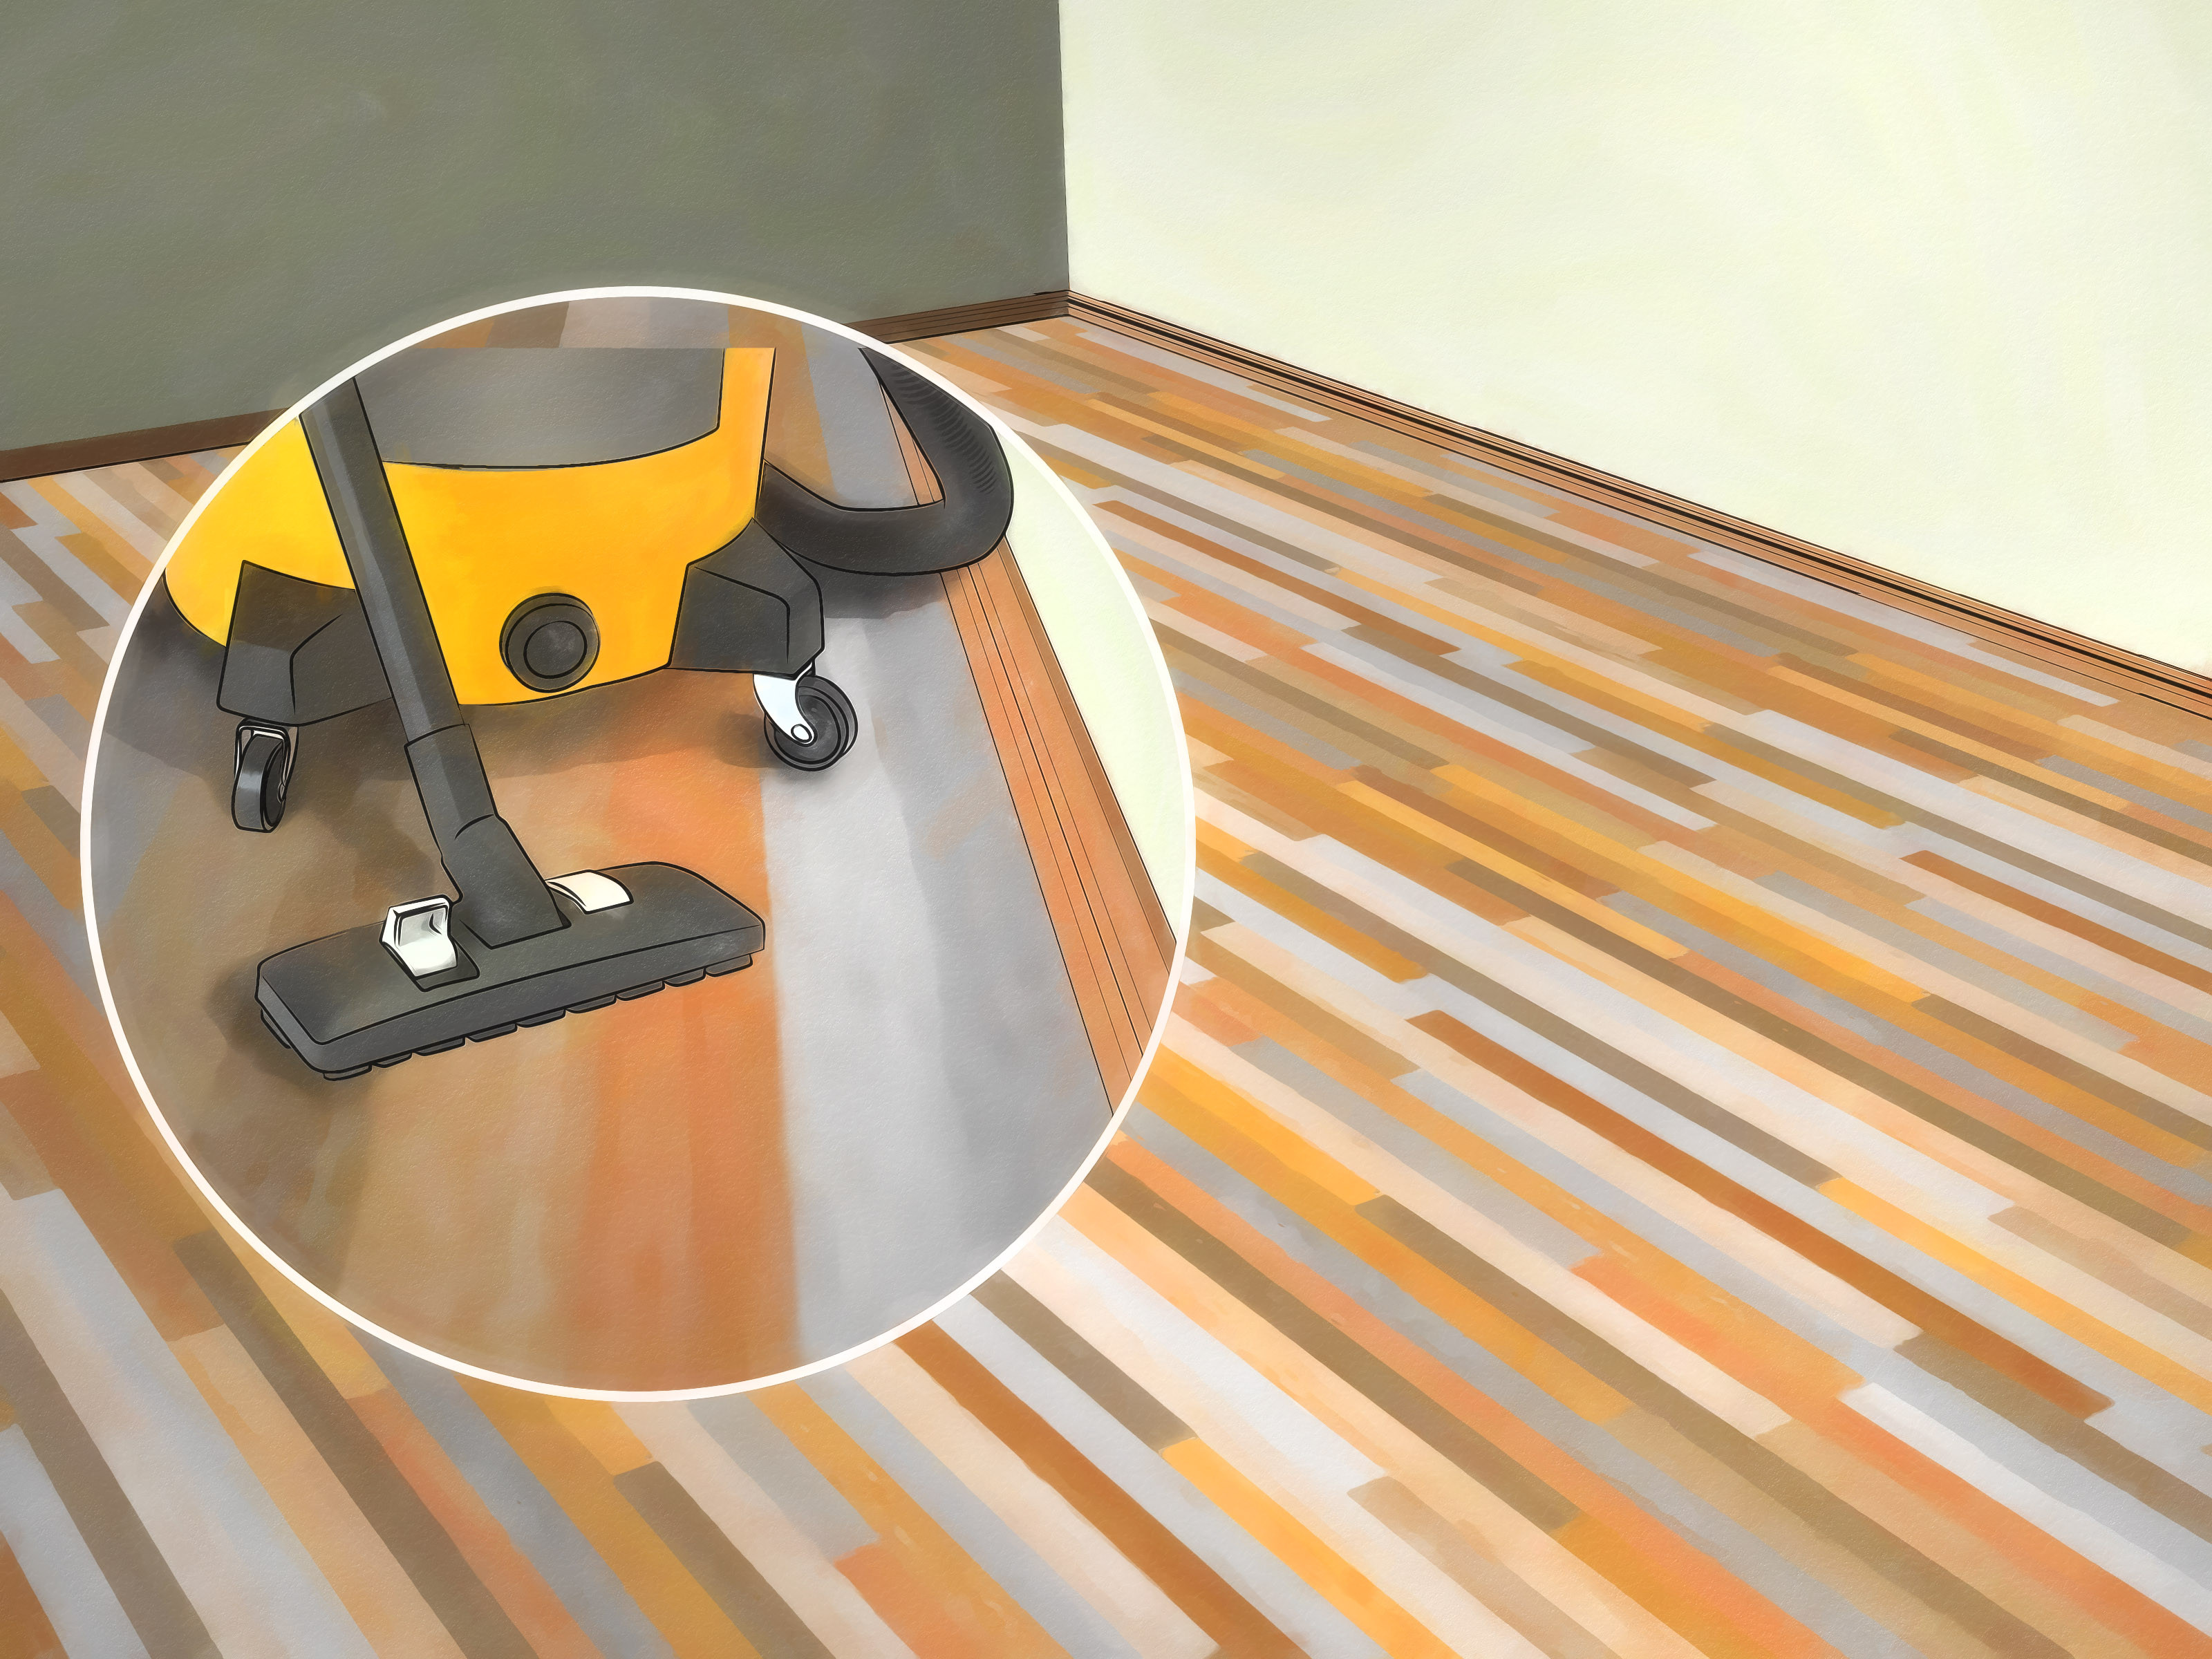 Grey Hardwood Floors Images Of How to Sand Hardwood Floors with Pictures Wikihow In Sand Hardwood Floors Step 22